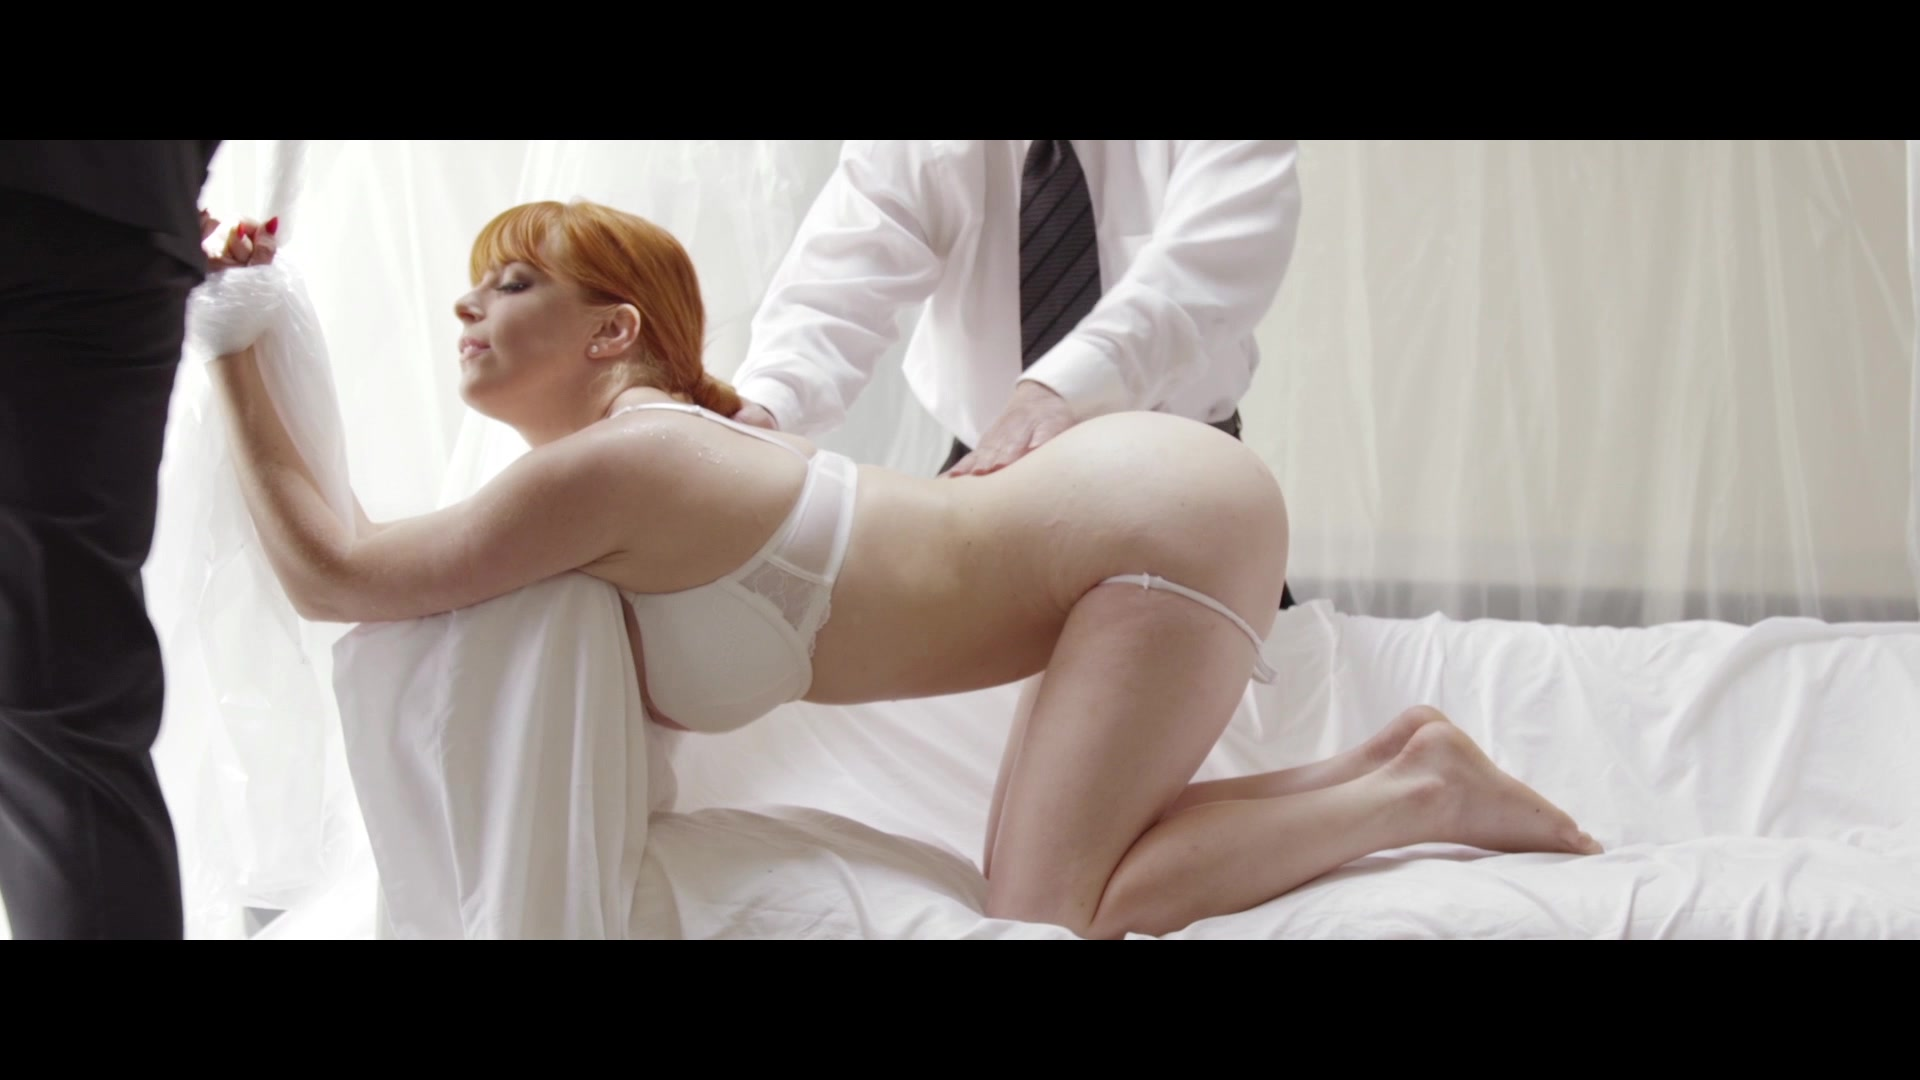 Scene with John Strong, Mick Blue and Penny Pax - image 7 out of 20